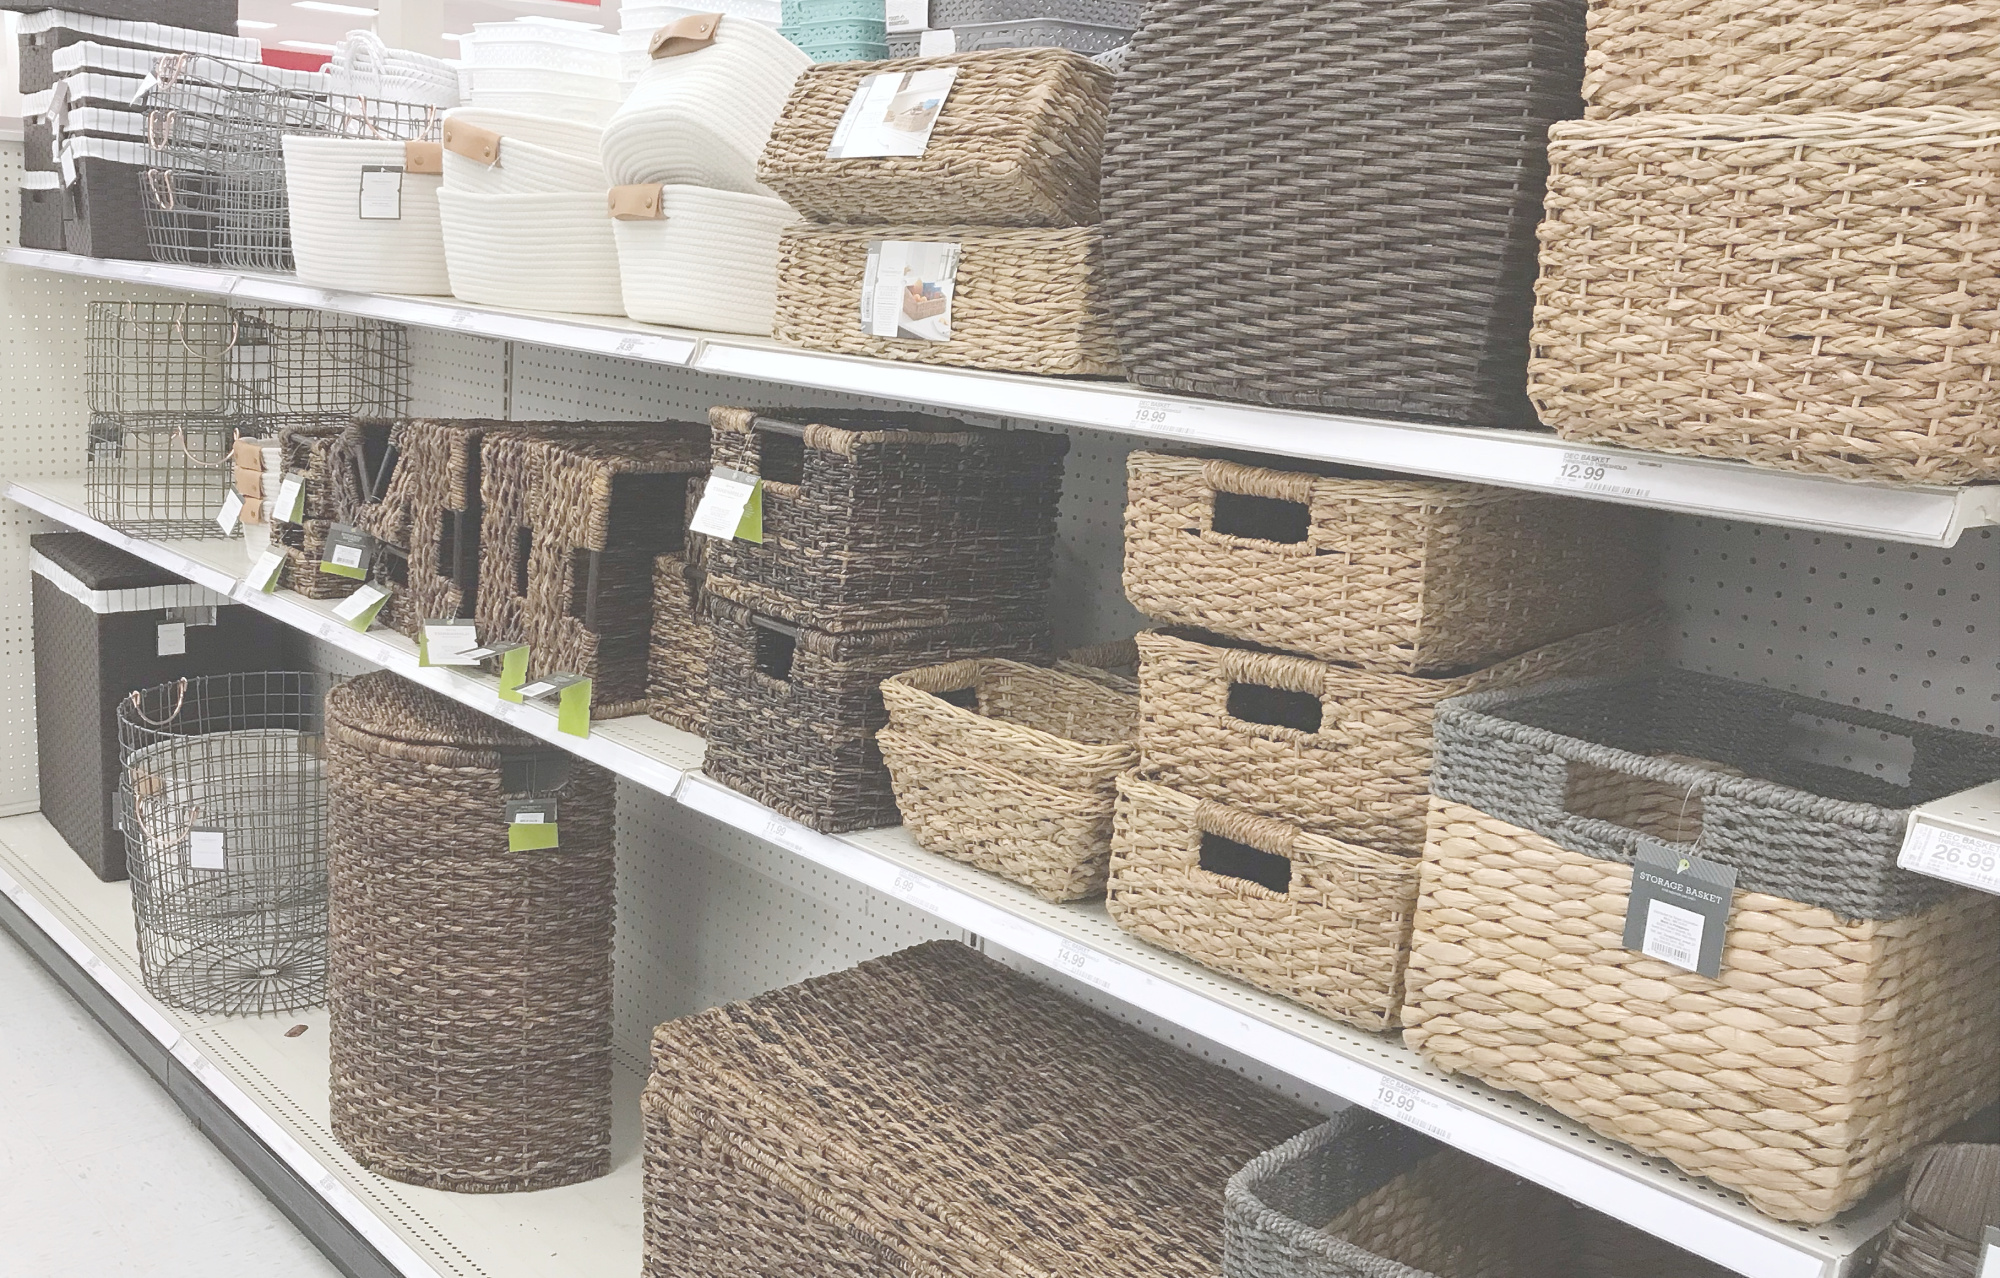 Variety of Organizing Products on Store Shelf